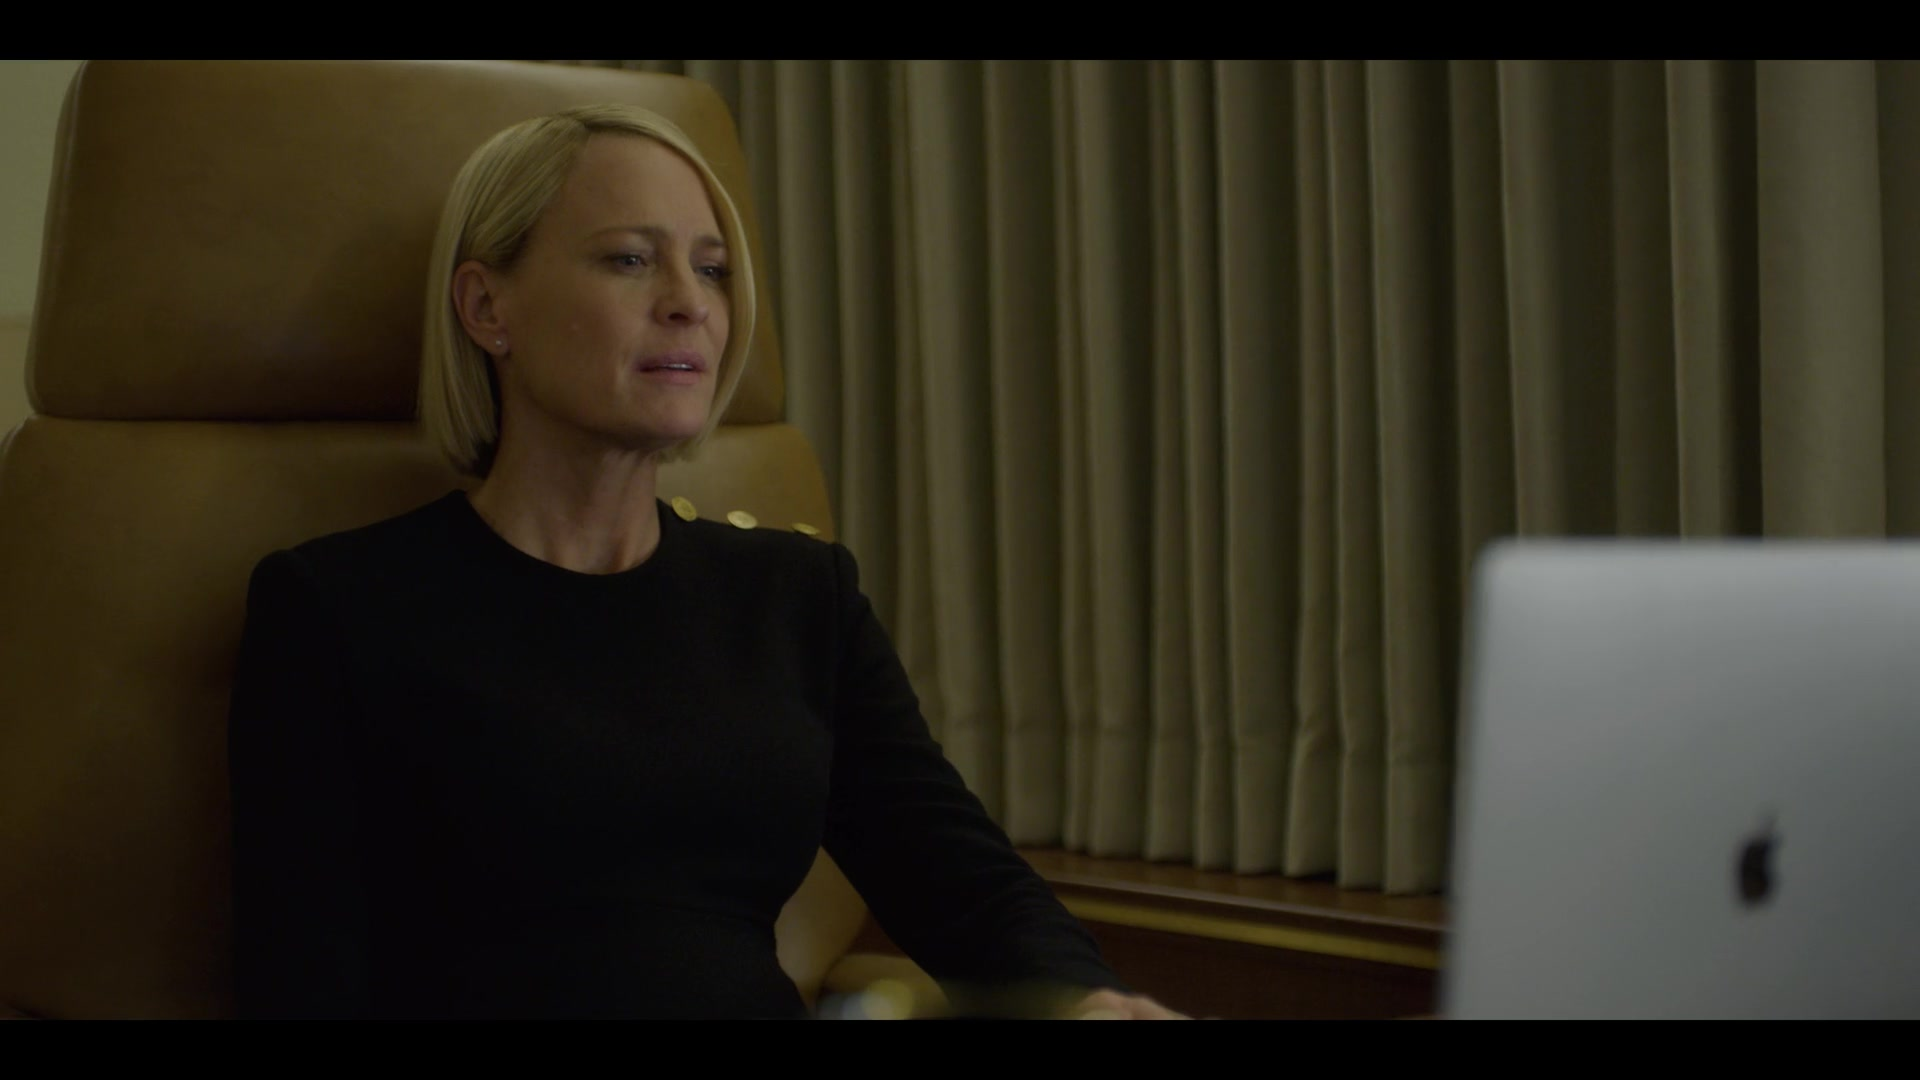 Apple Macbook Pro 15 Laptop Used By Robin Wright Claire Underwood